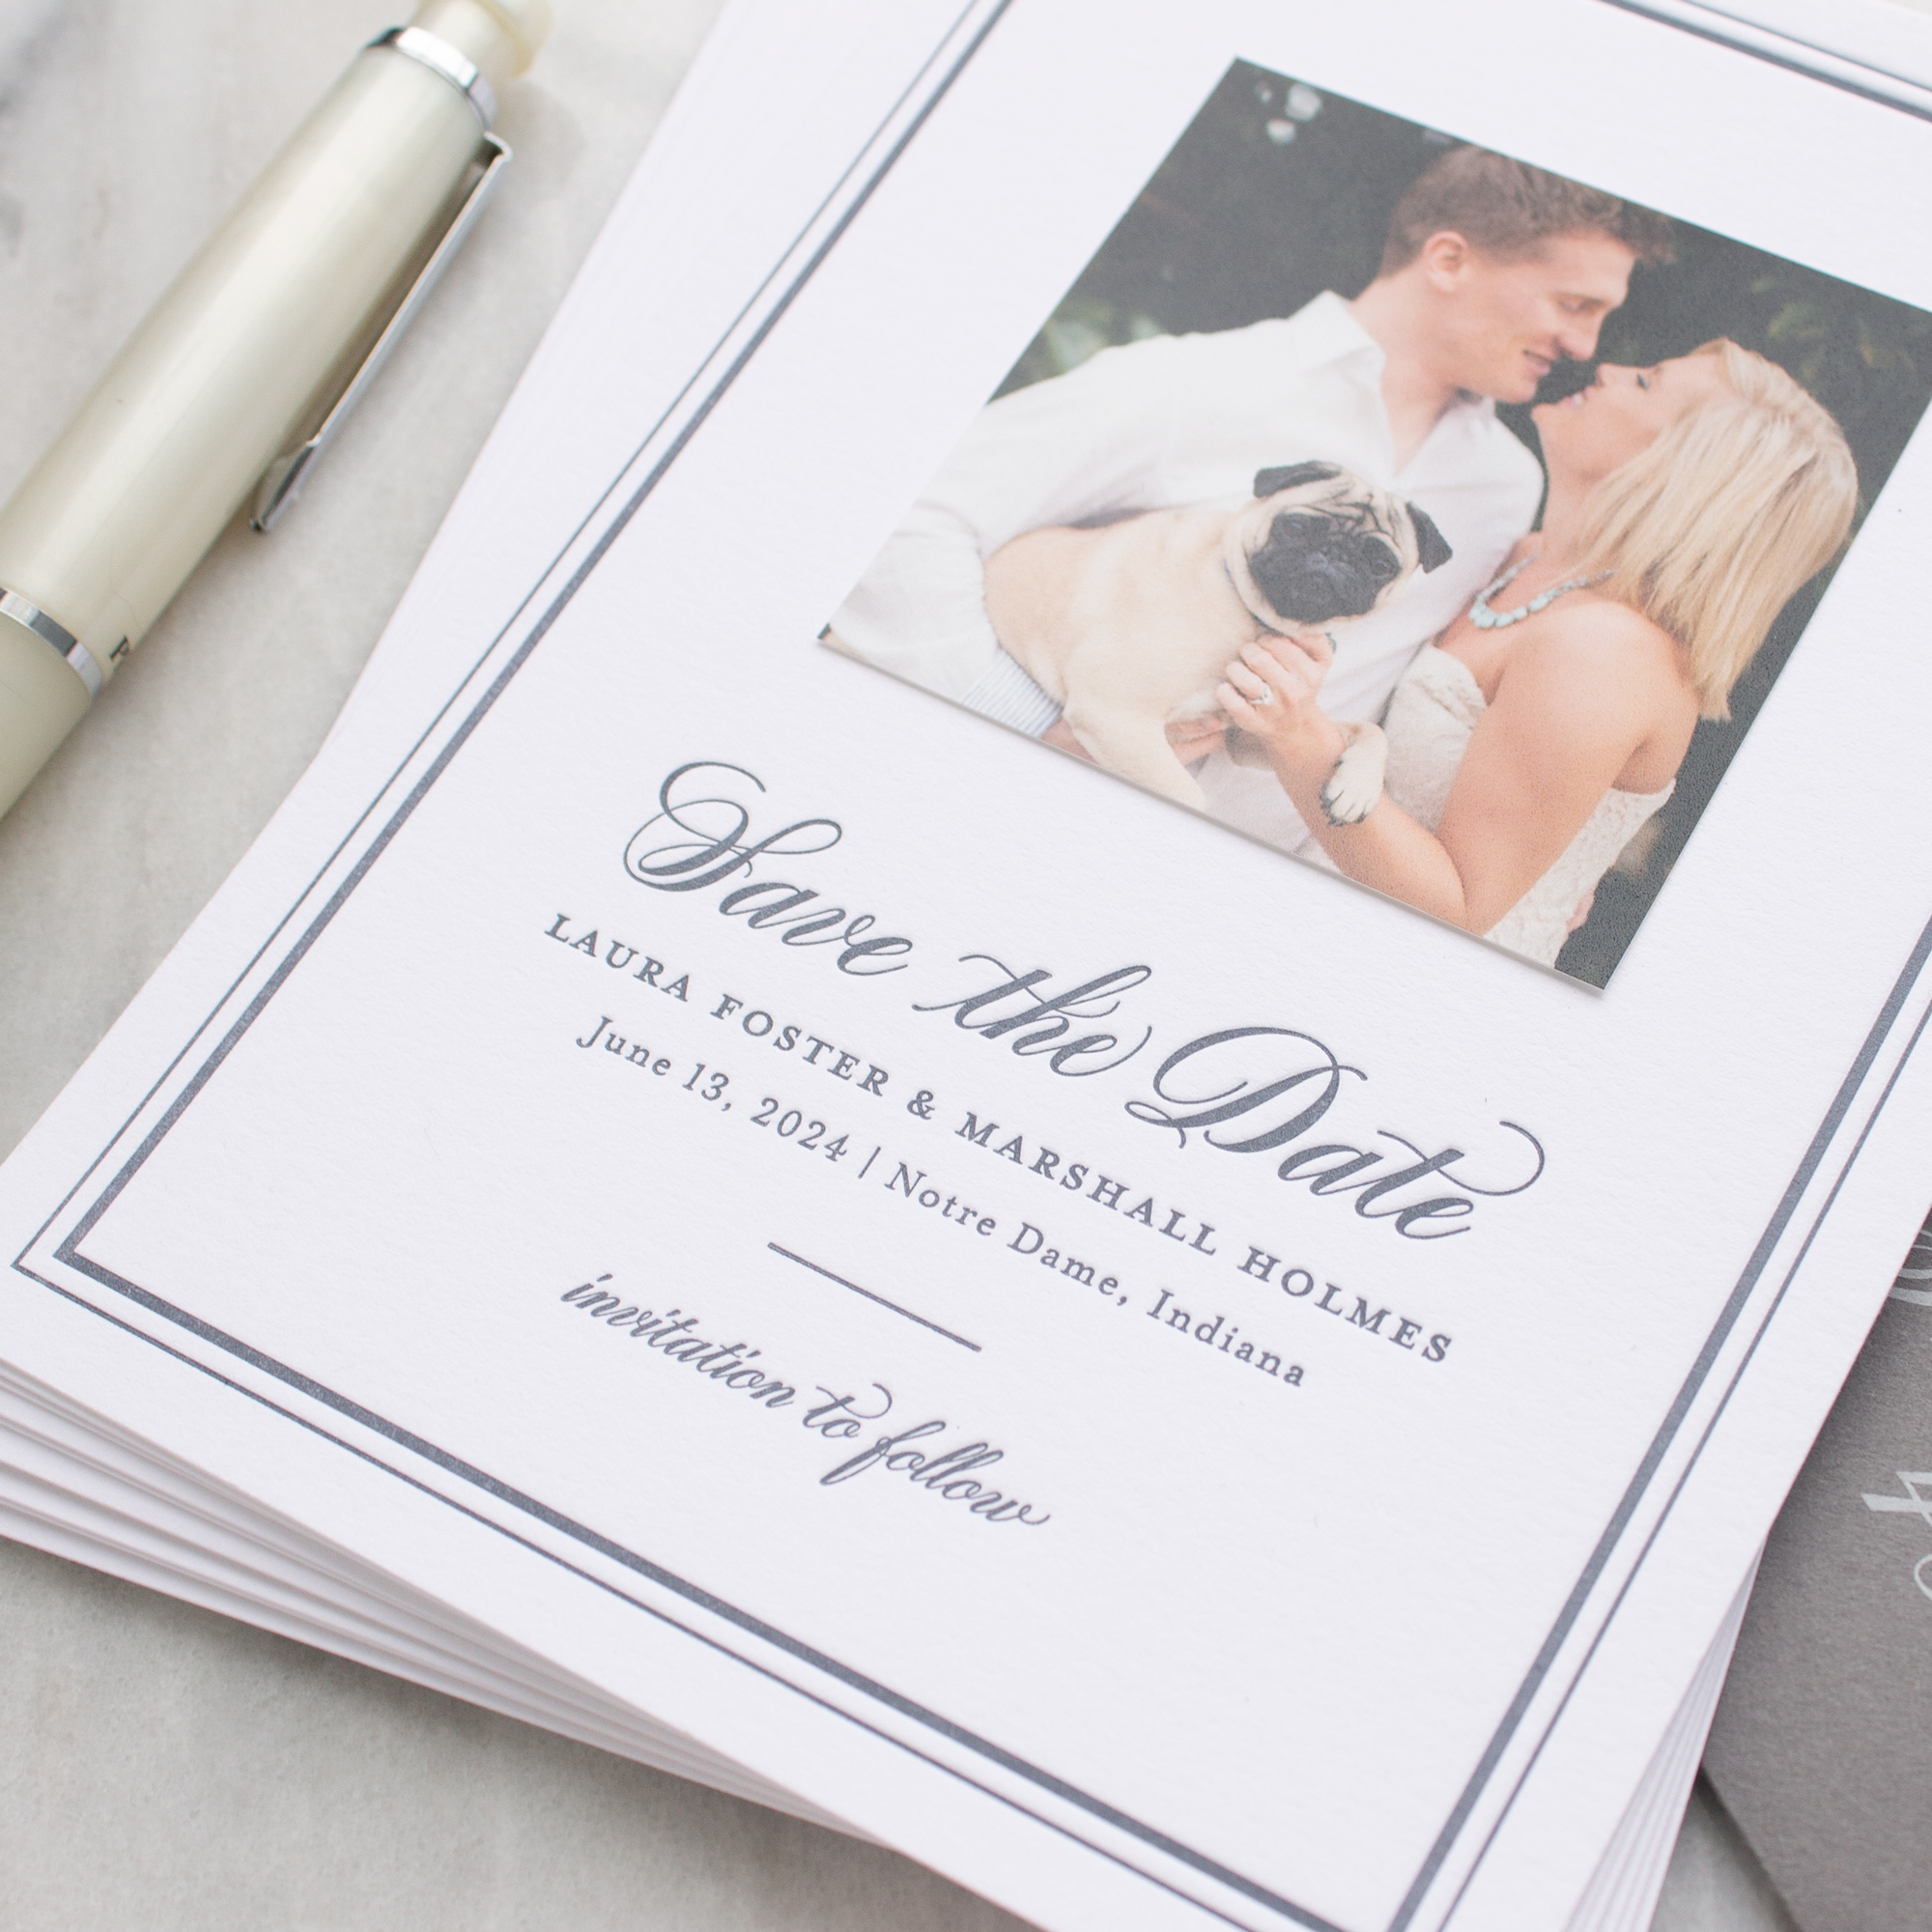 notre dame wedding save the dates